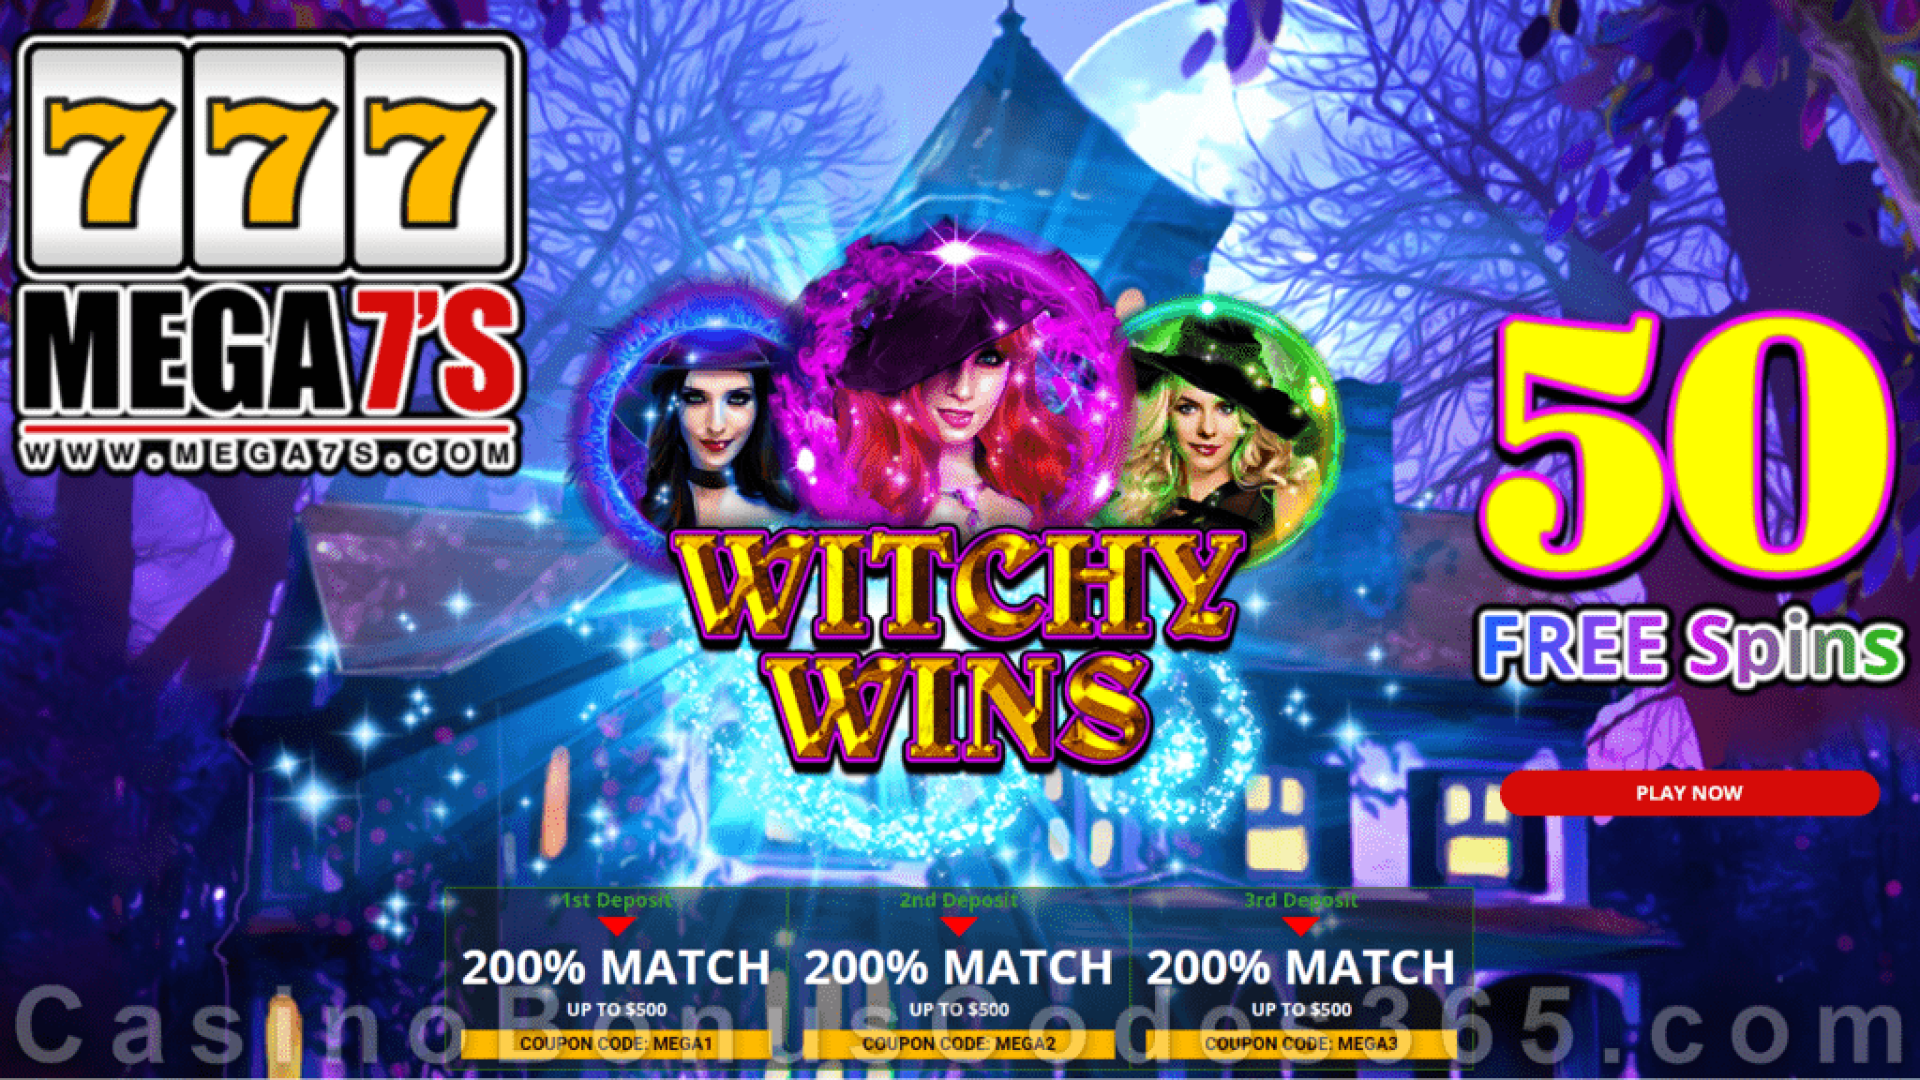 Mega7s Casino 50 FREE Spins New RTG Game Witchy Wins Offer